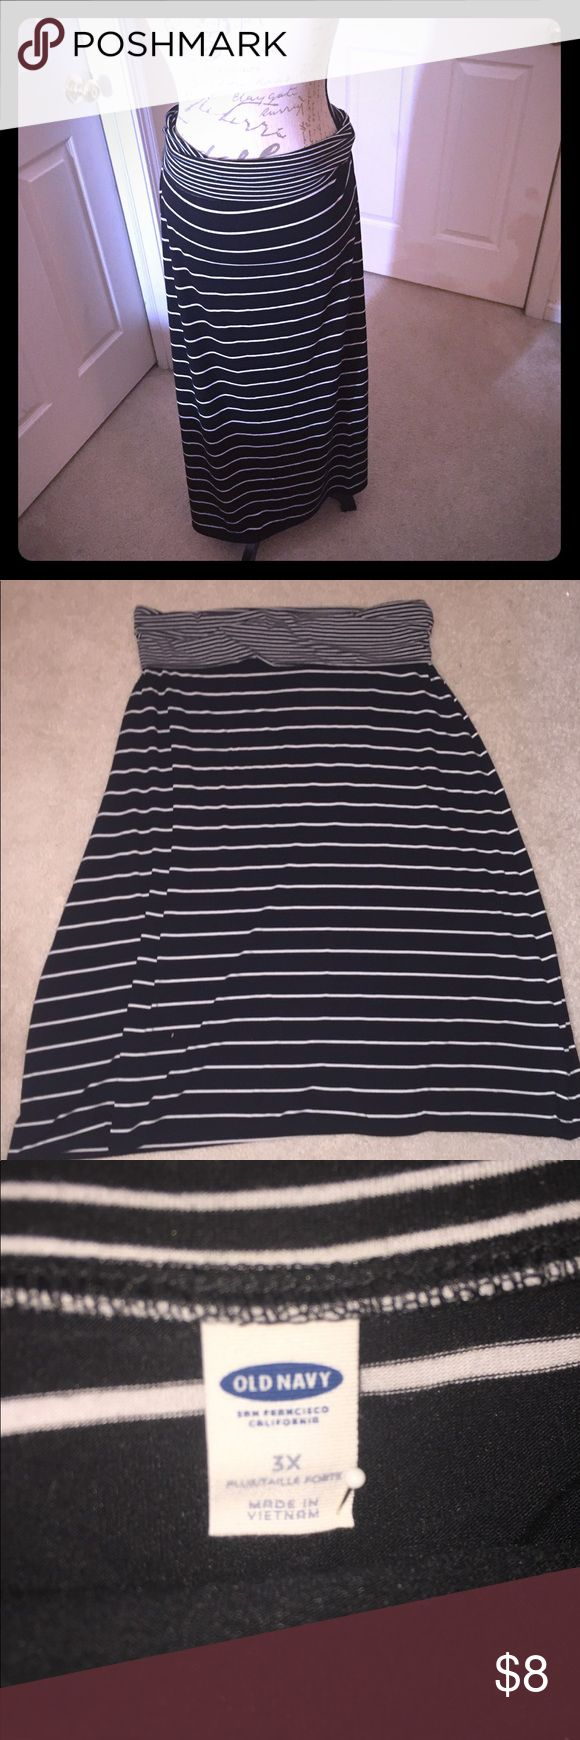 Old Navy Black and White stripe maxi skirt Super comfortable cotton stripped maxi skirt. 37' inches long from folded over waist band. Waist 23' inches across. (Pinned on mannequin) Old Navy Skirts Maxi